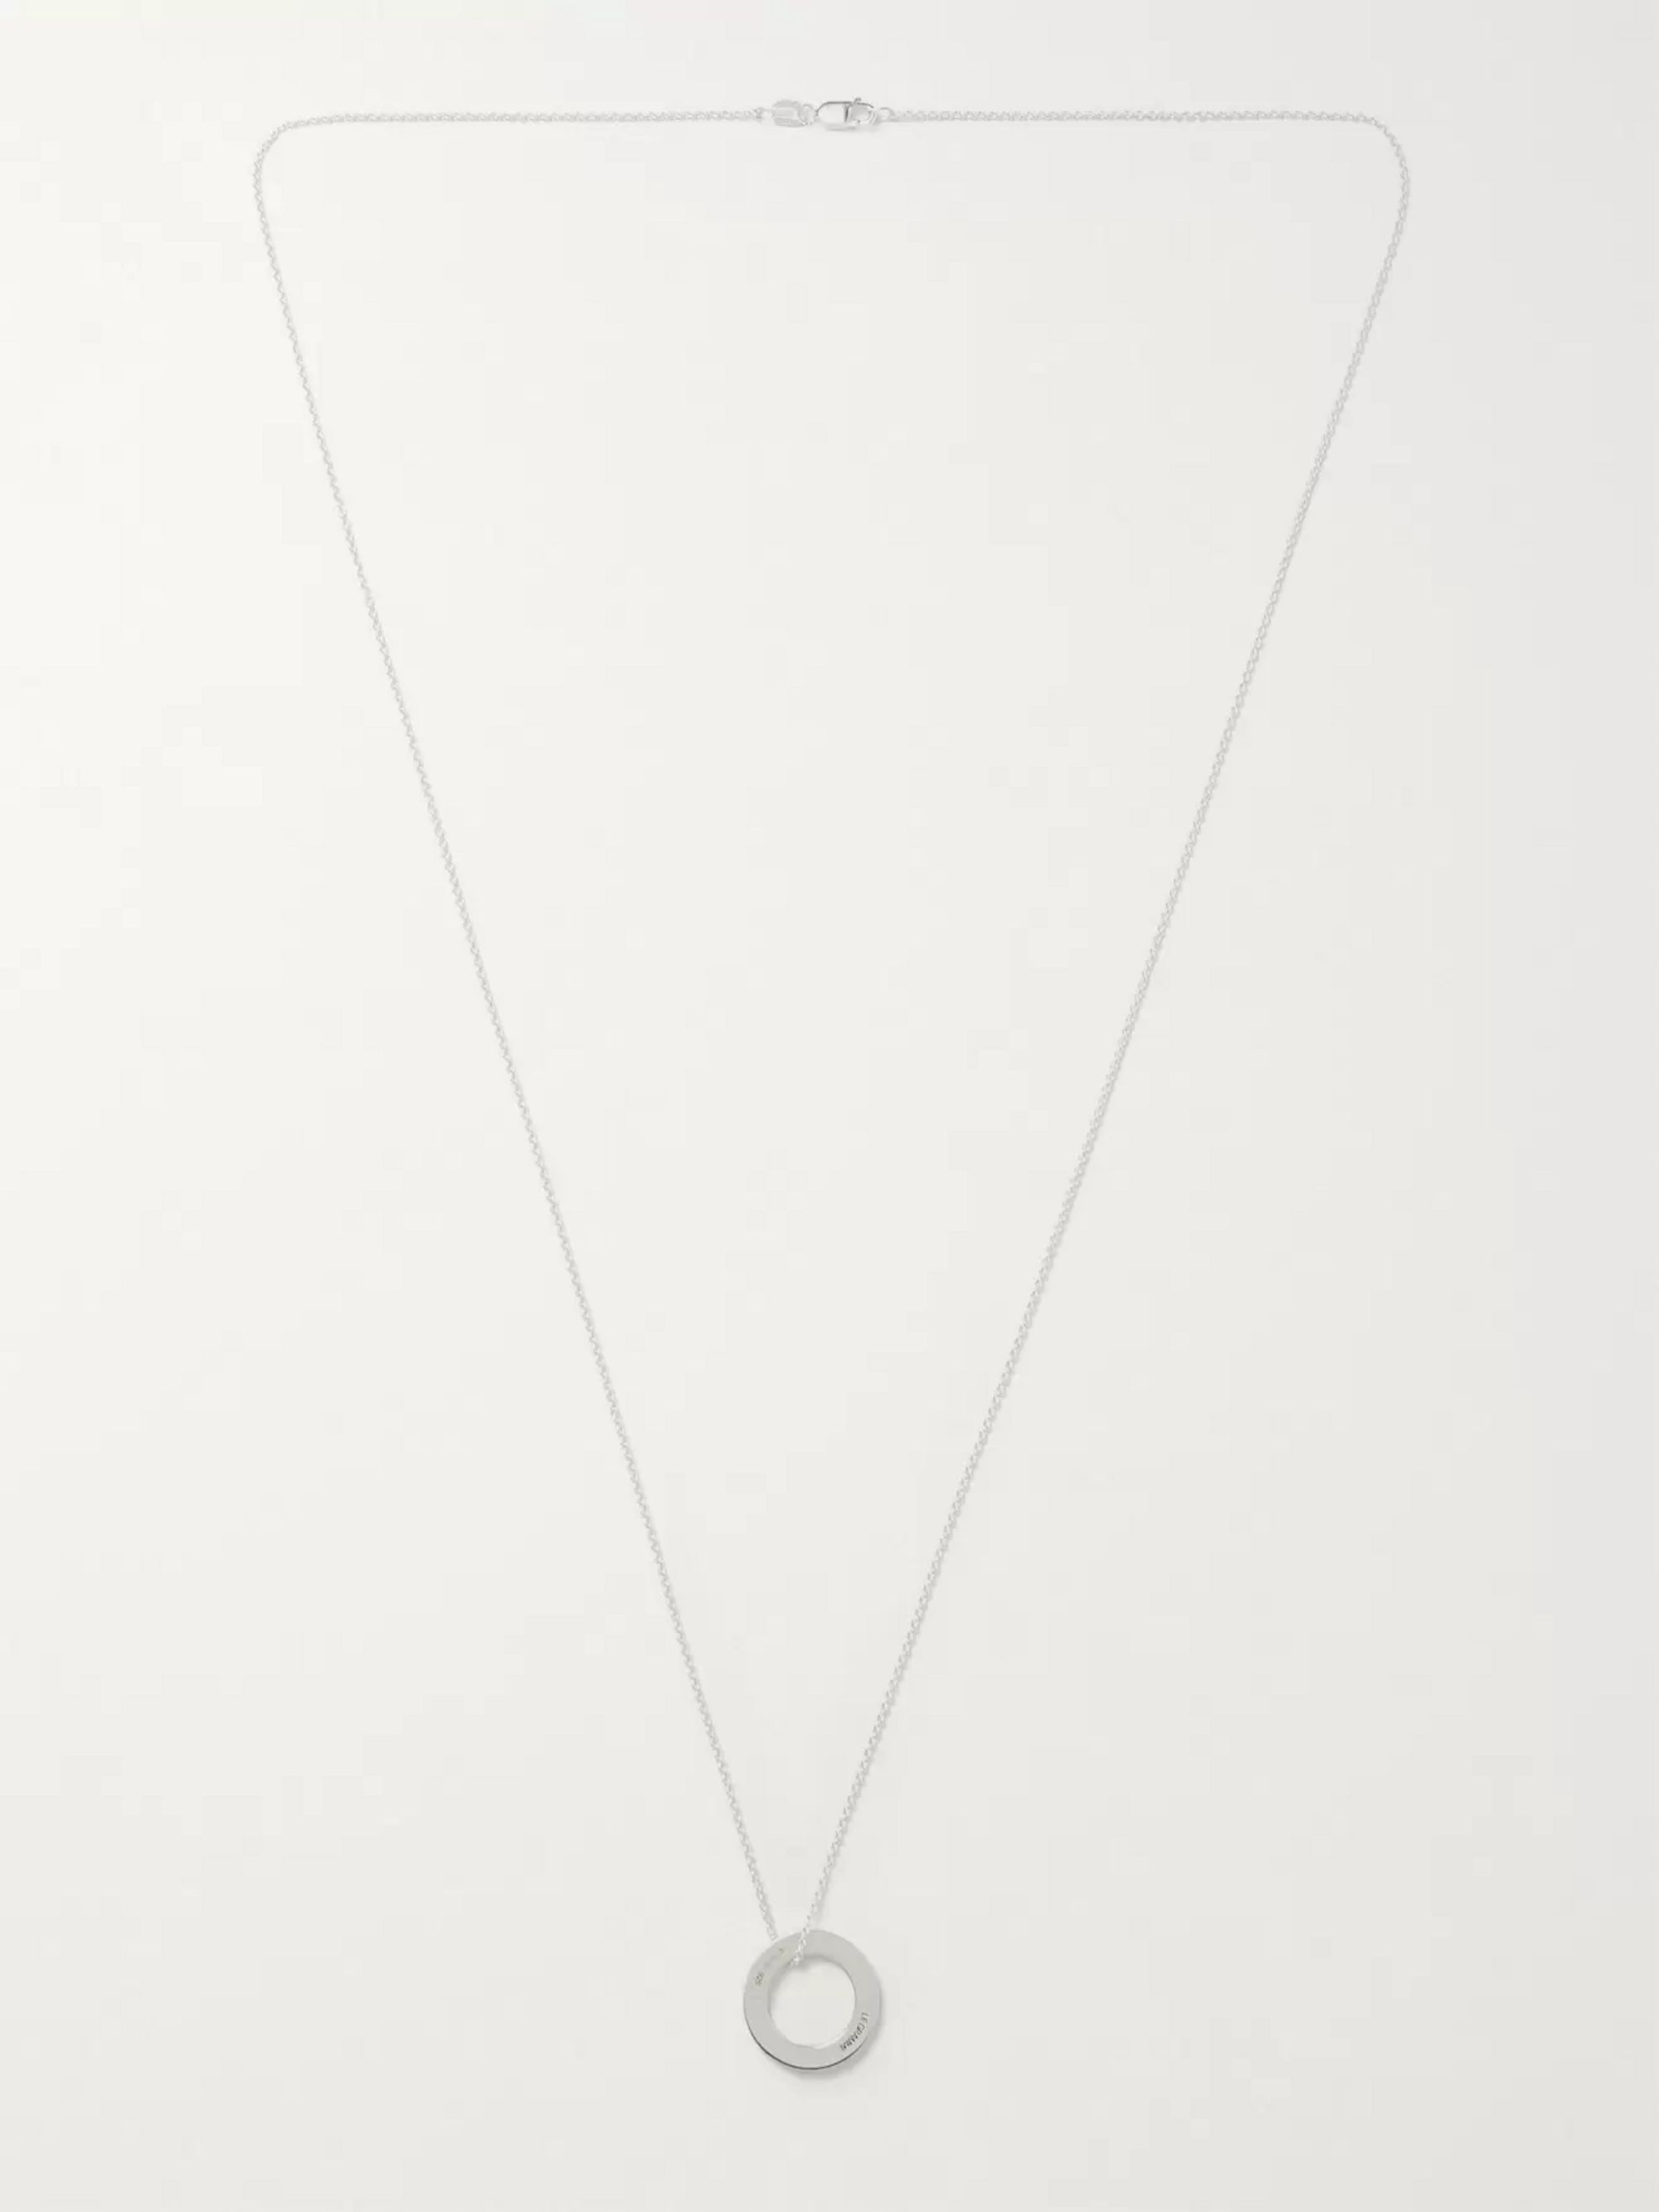 Le Gramme Le 2.5 Sterling Silver Necklace